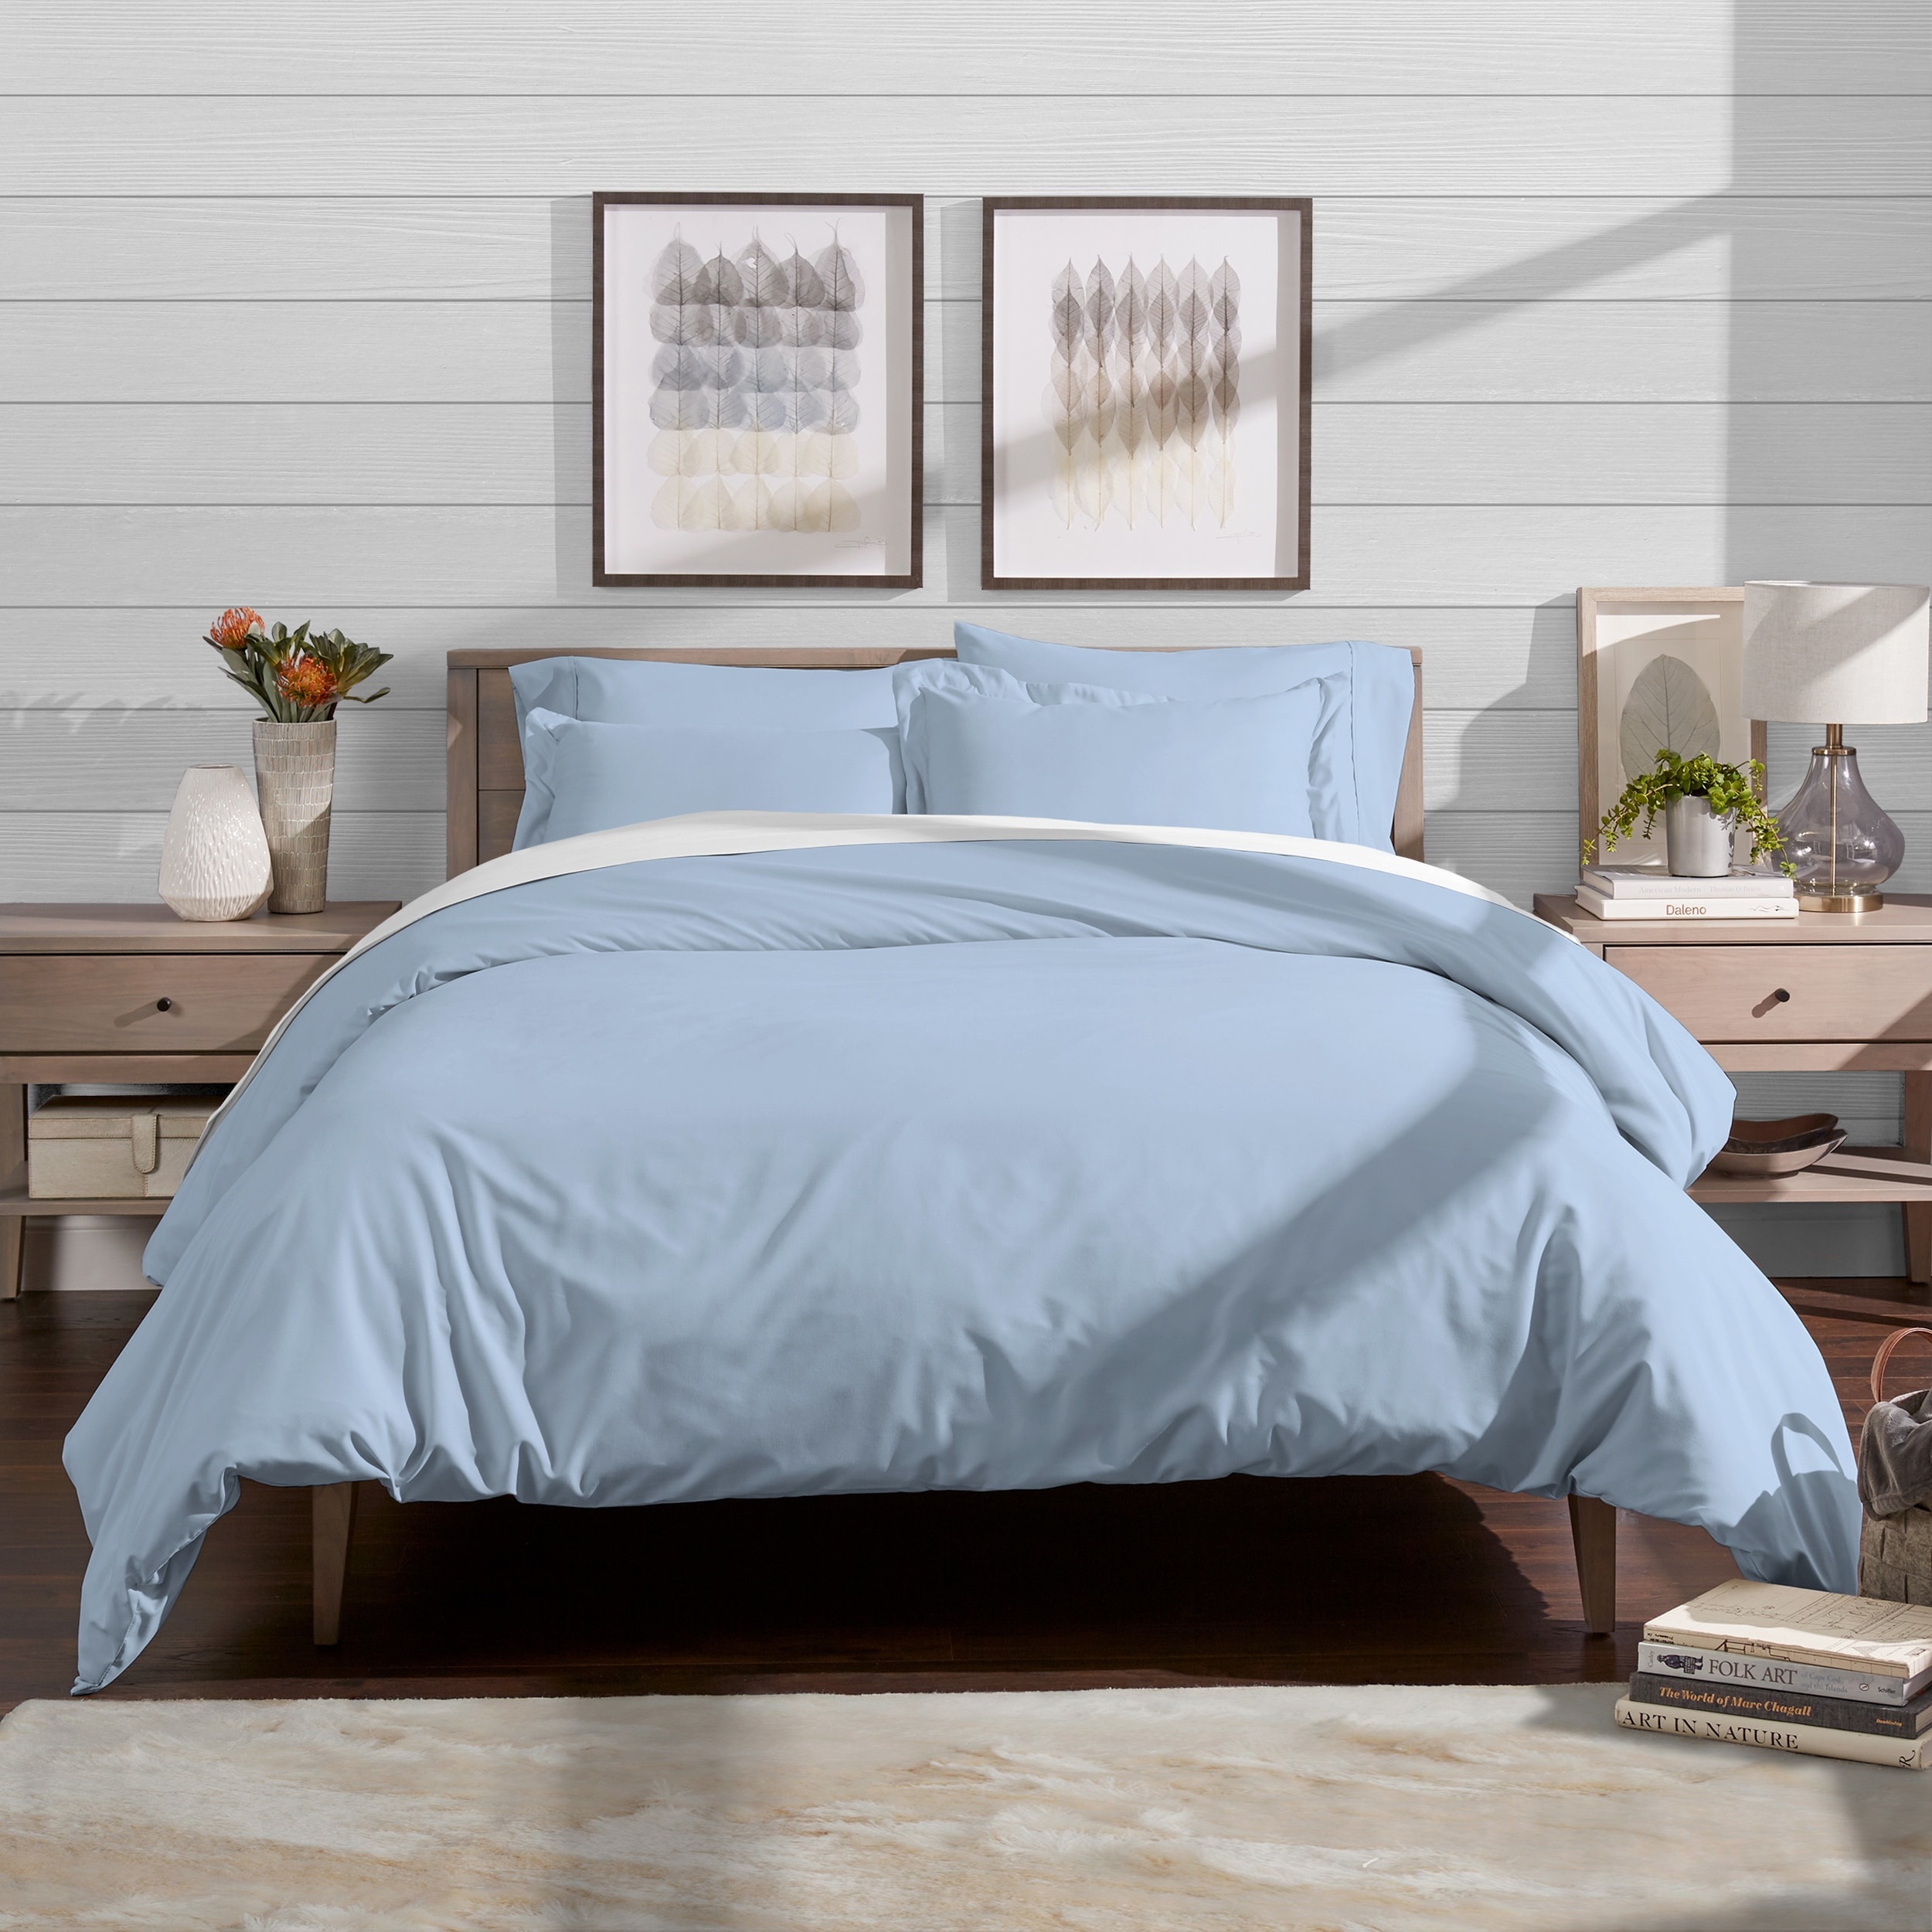 Taupe Duvet Cover Set Soft Brushed Comforter Cover W Pillow Sham Twin Bedding Duvet Covers Sets